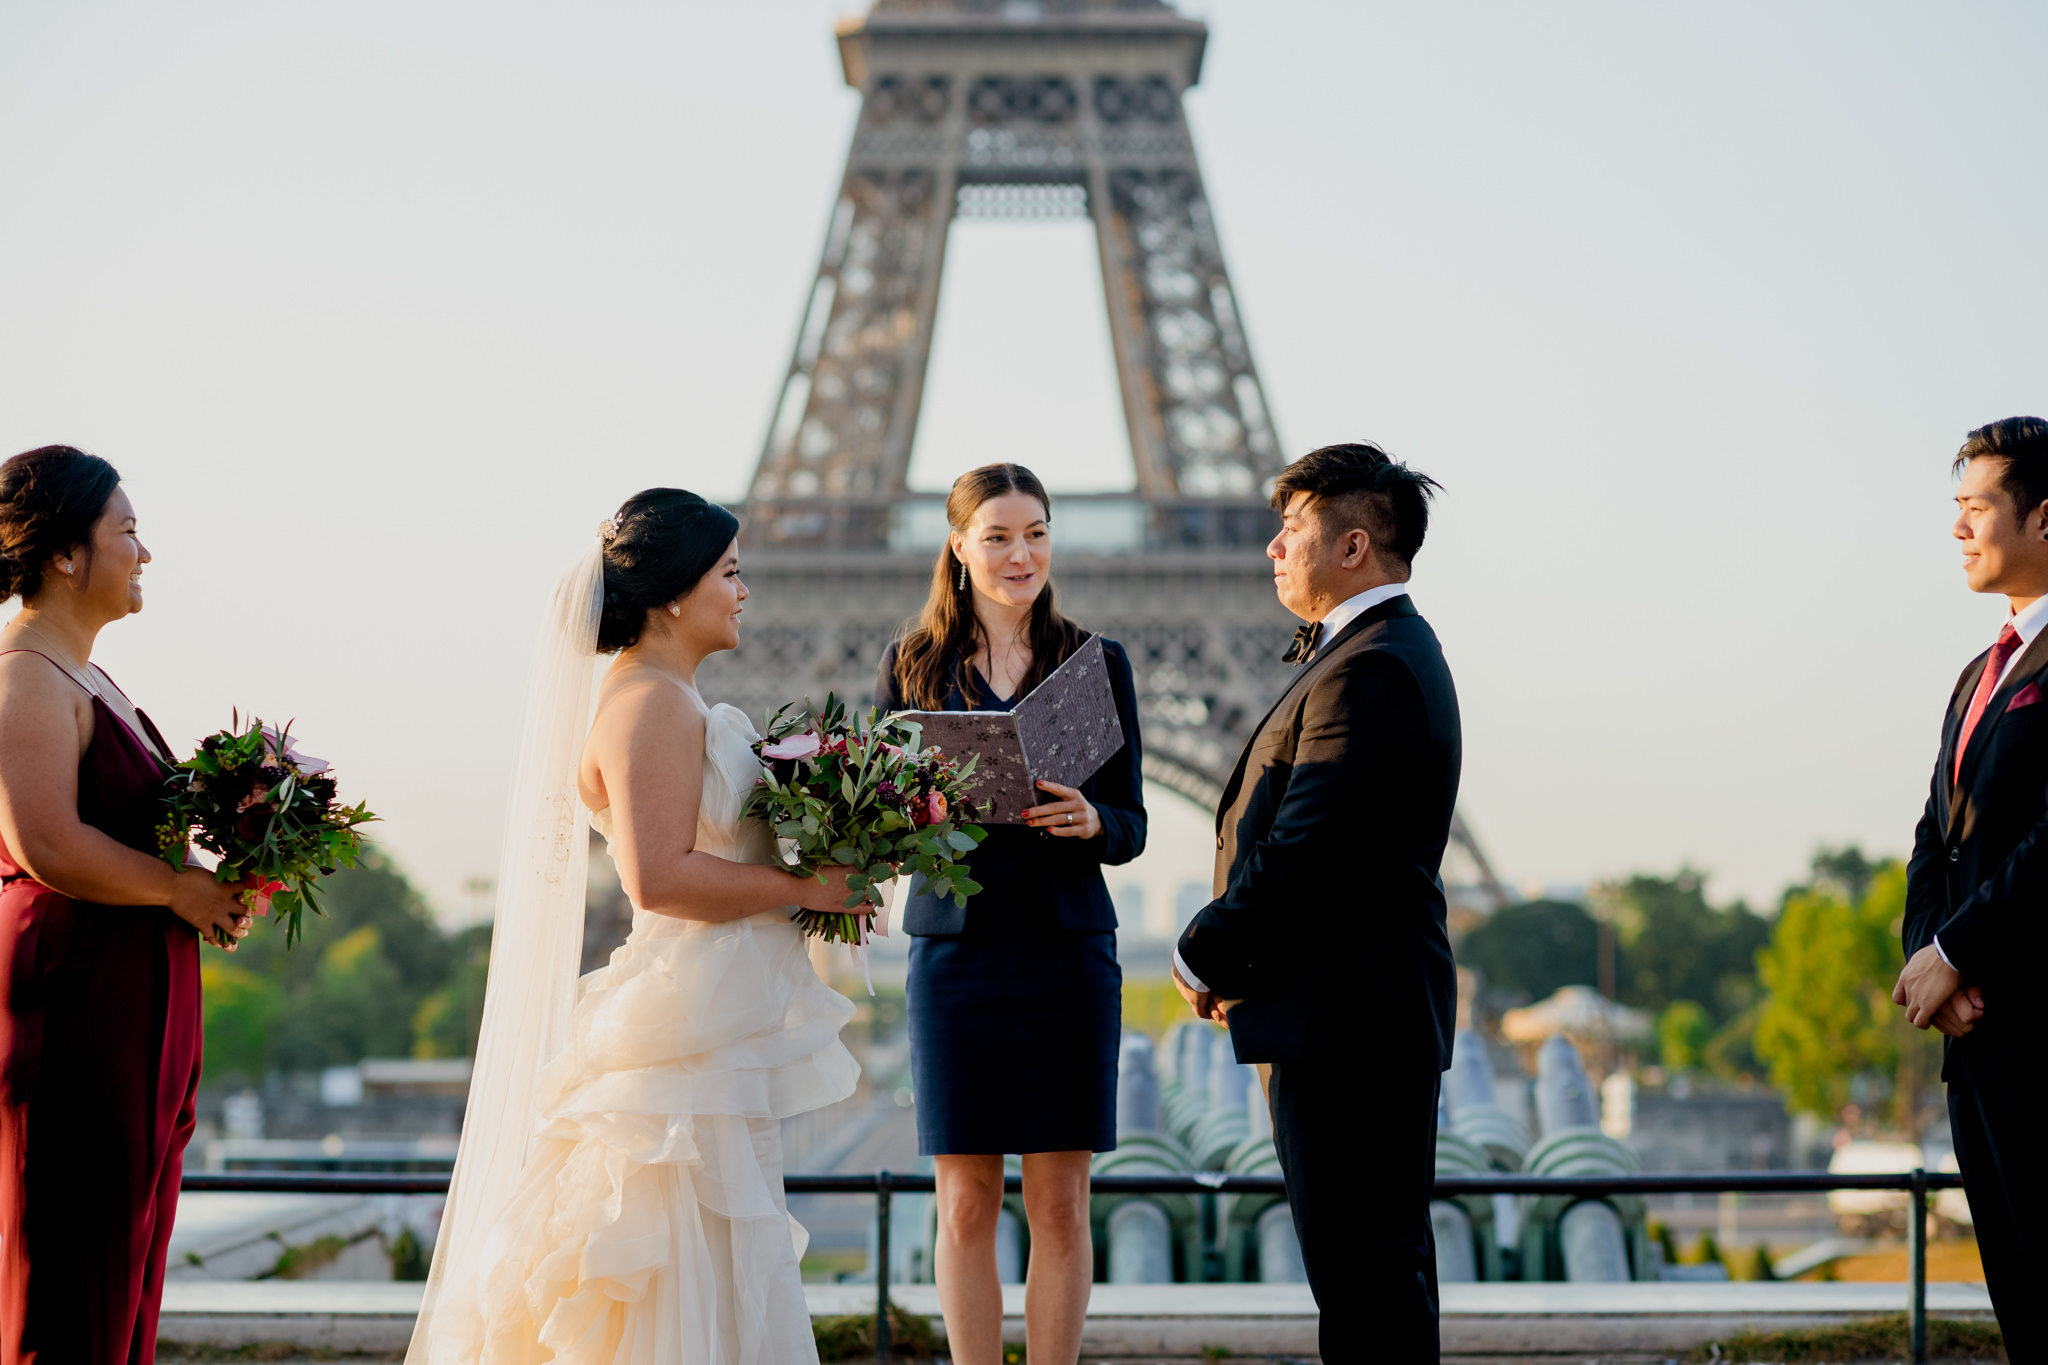 A bride and groom during a wedding ceremony in Paris.